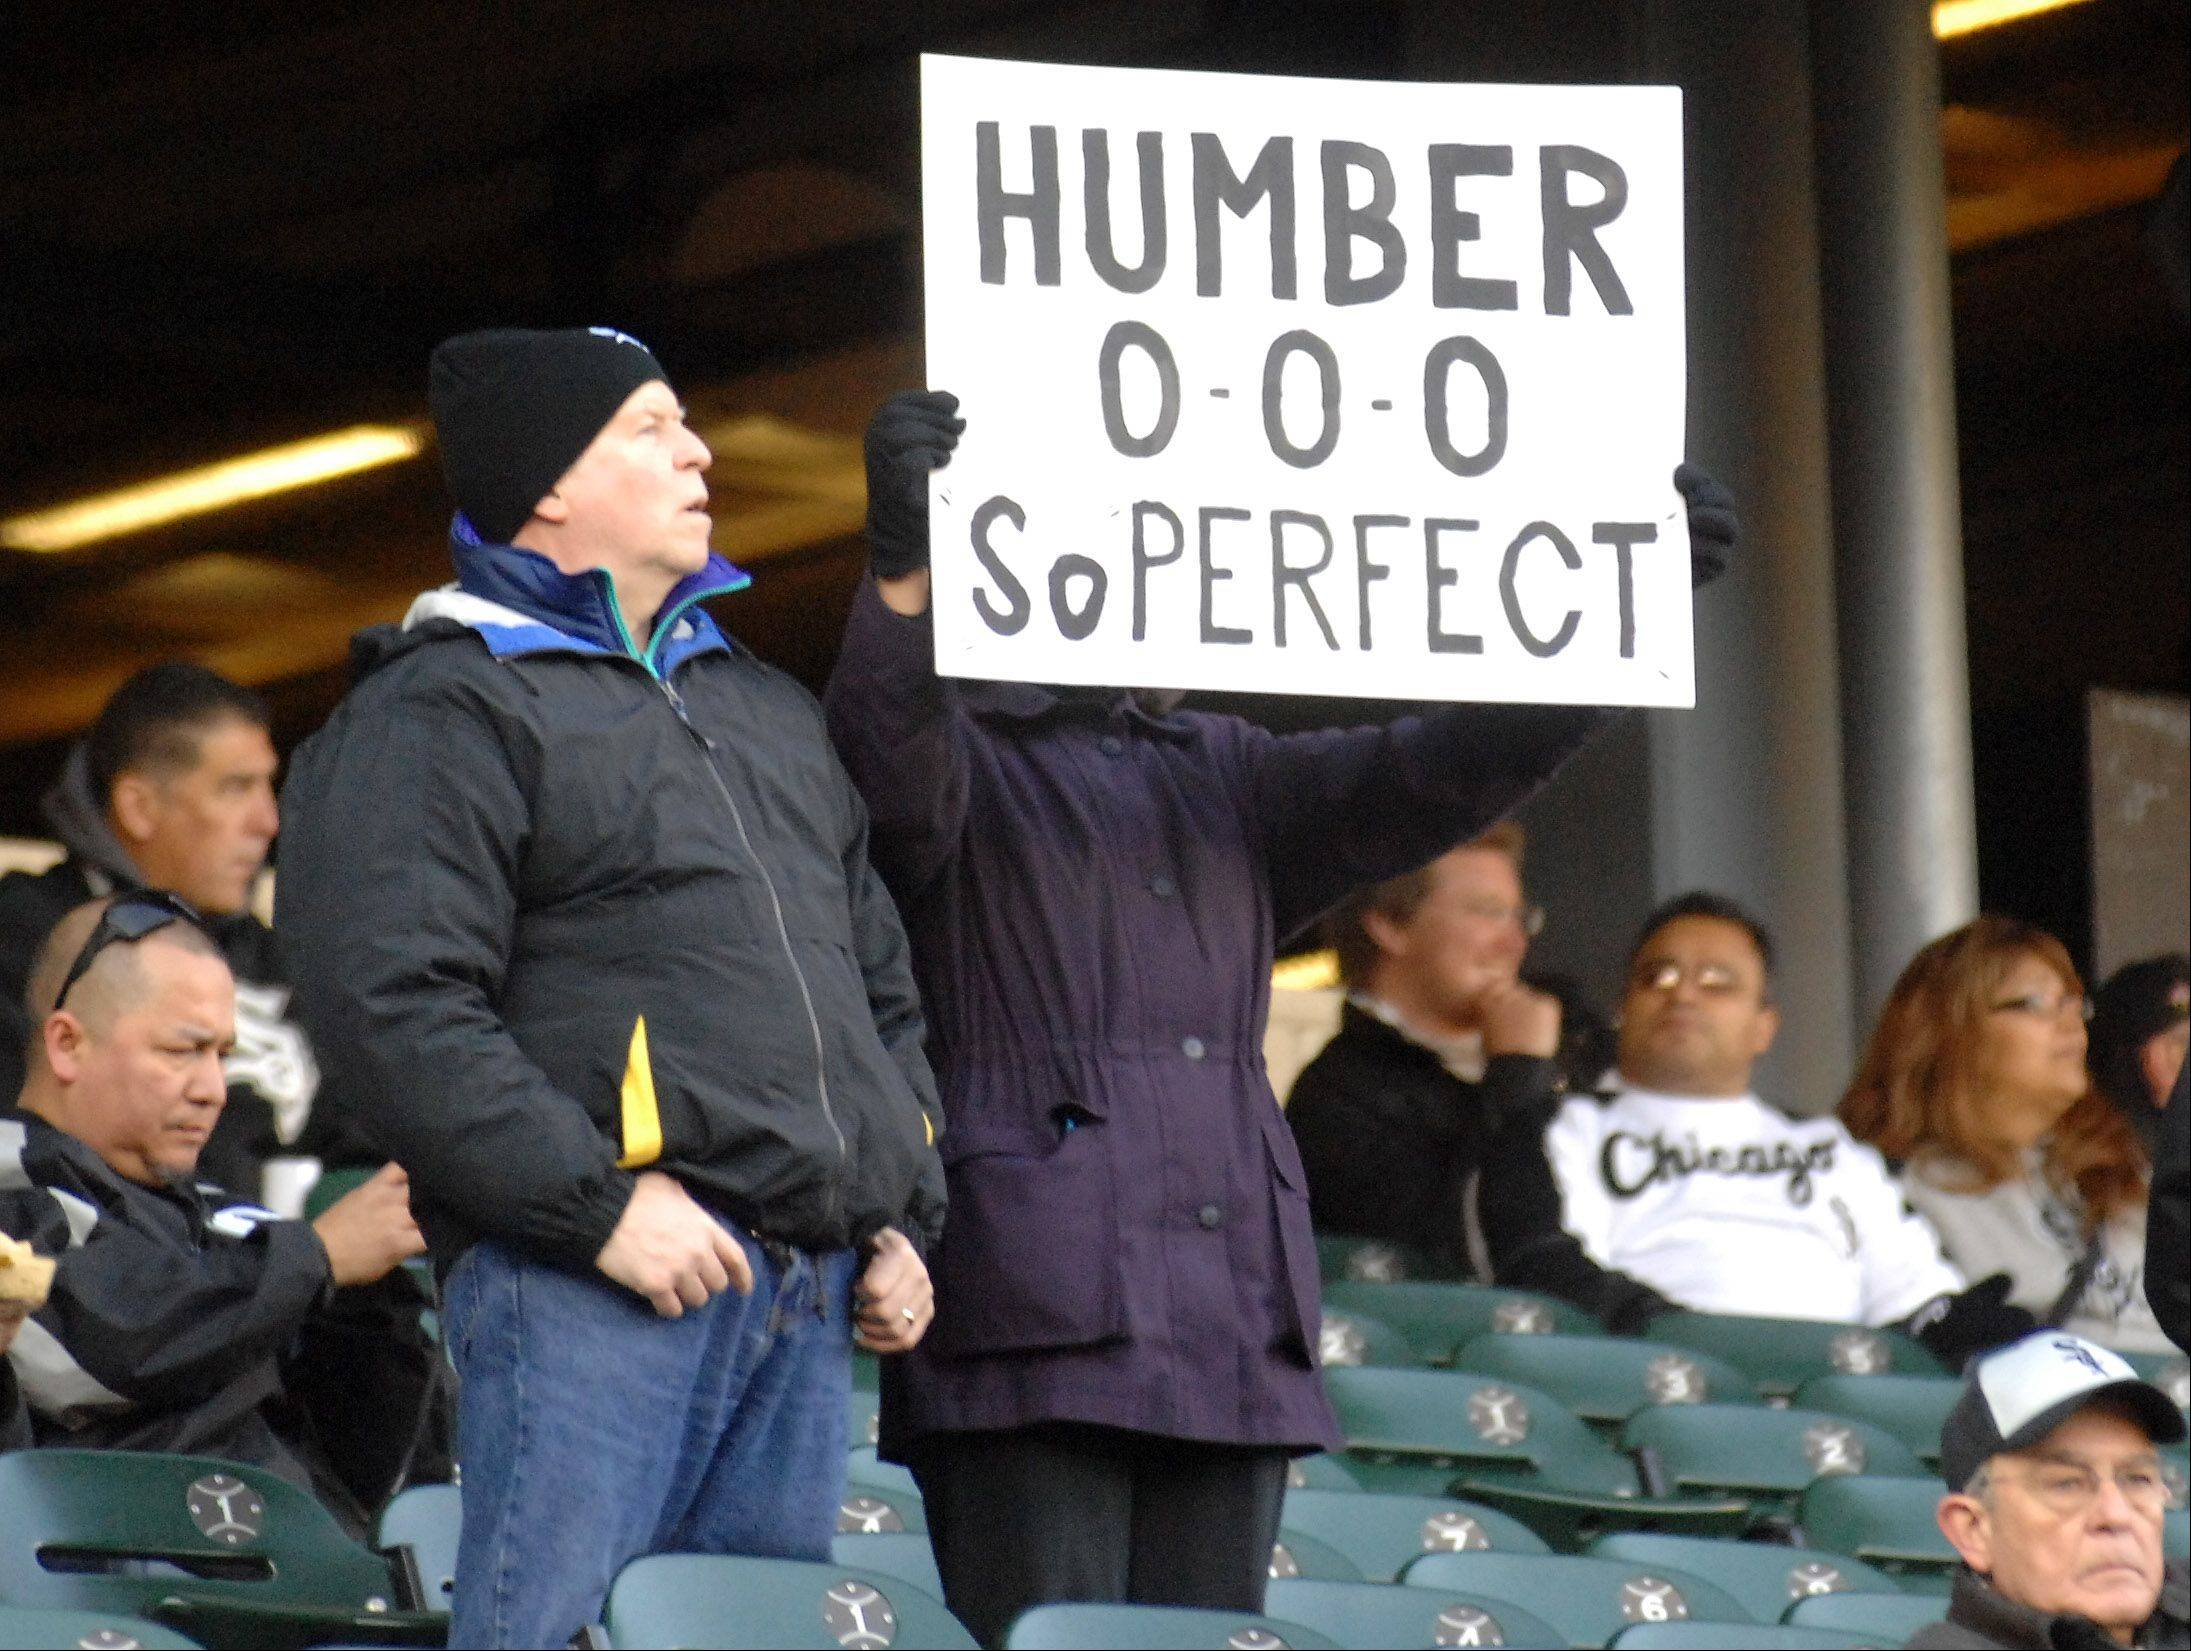 A fan honors Chicago White Sox starting pitcher Philip Humber's perfect game before Thursday's game at U.S. Cellular Field in Chicago.